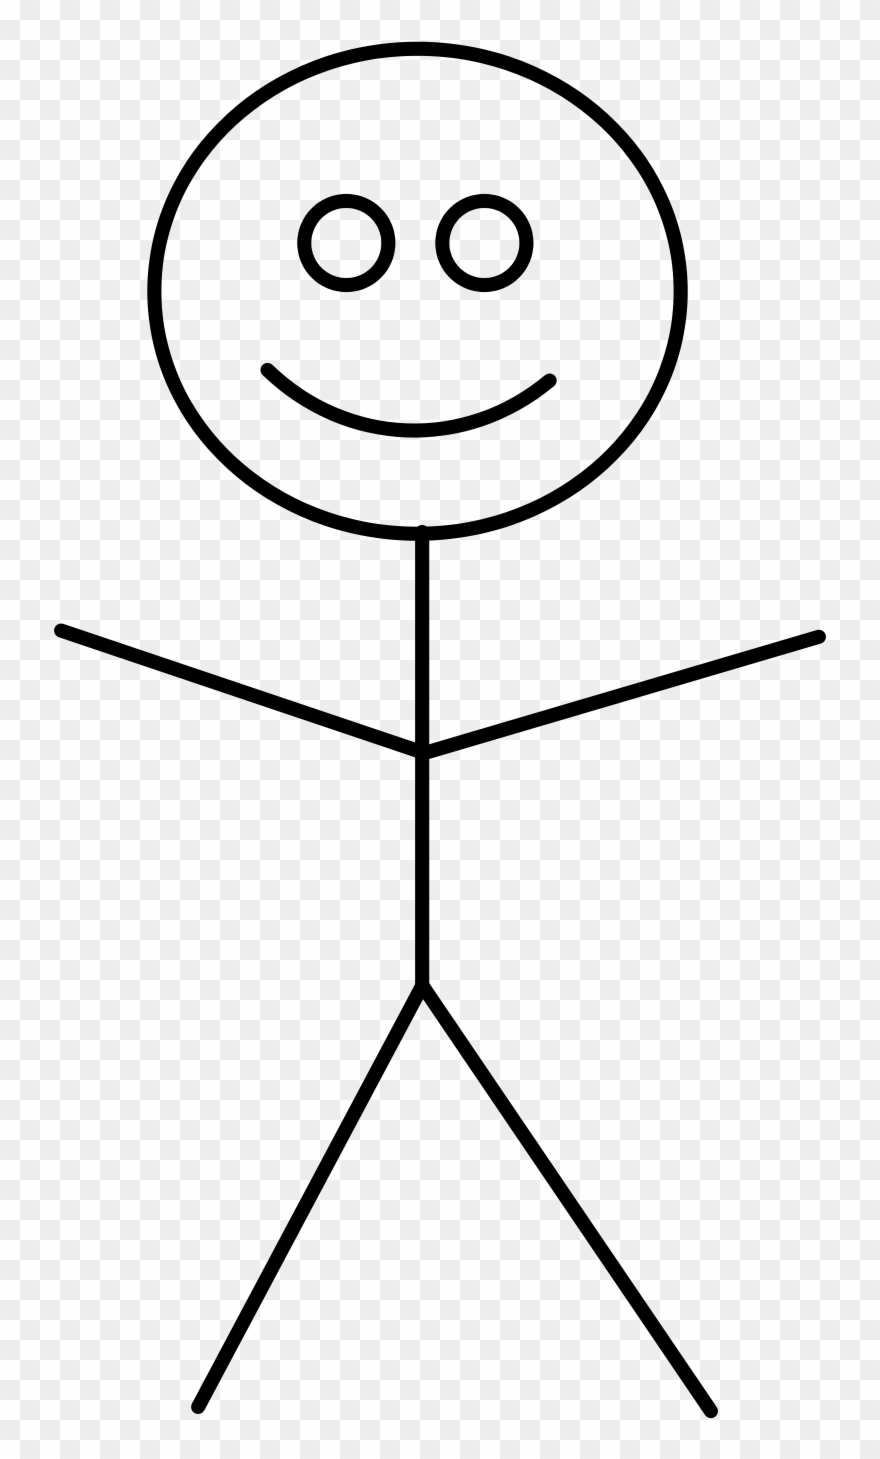 Clipart Of Figure, Stick And Person And.